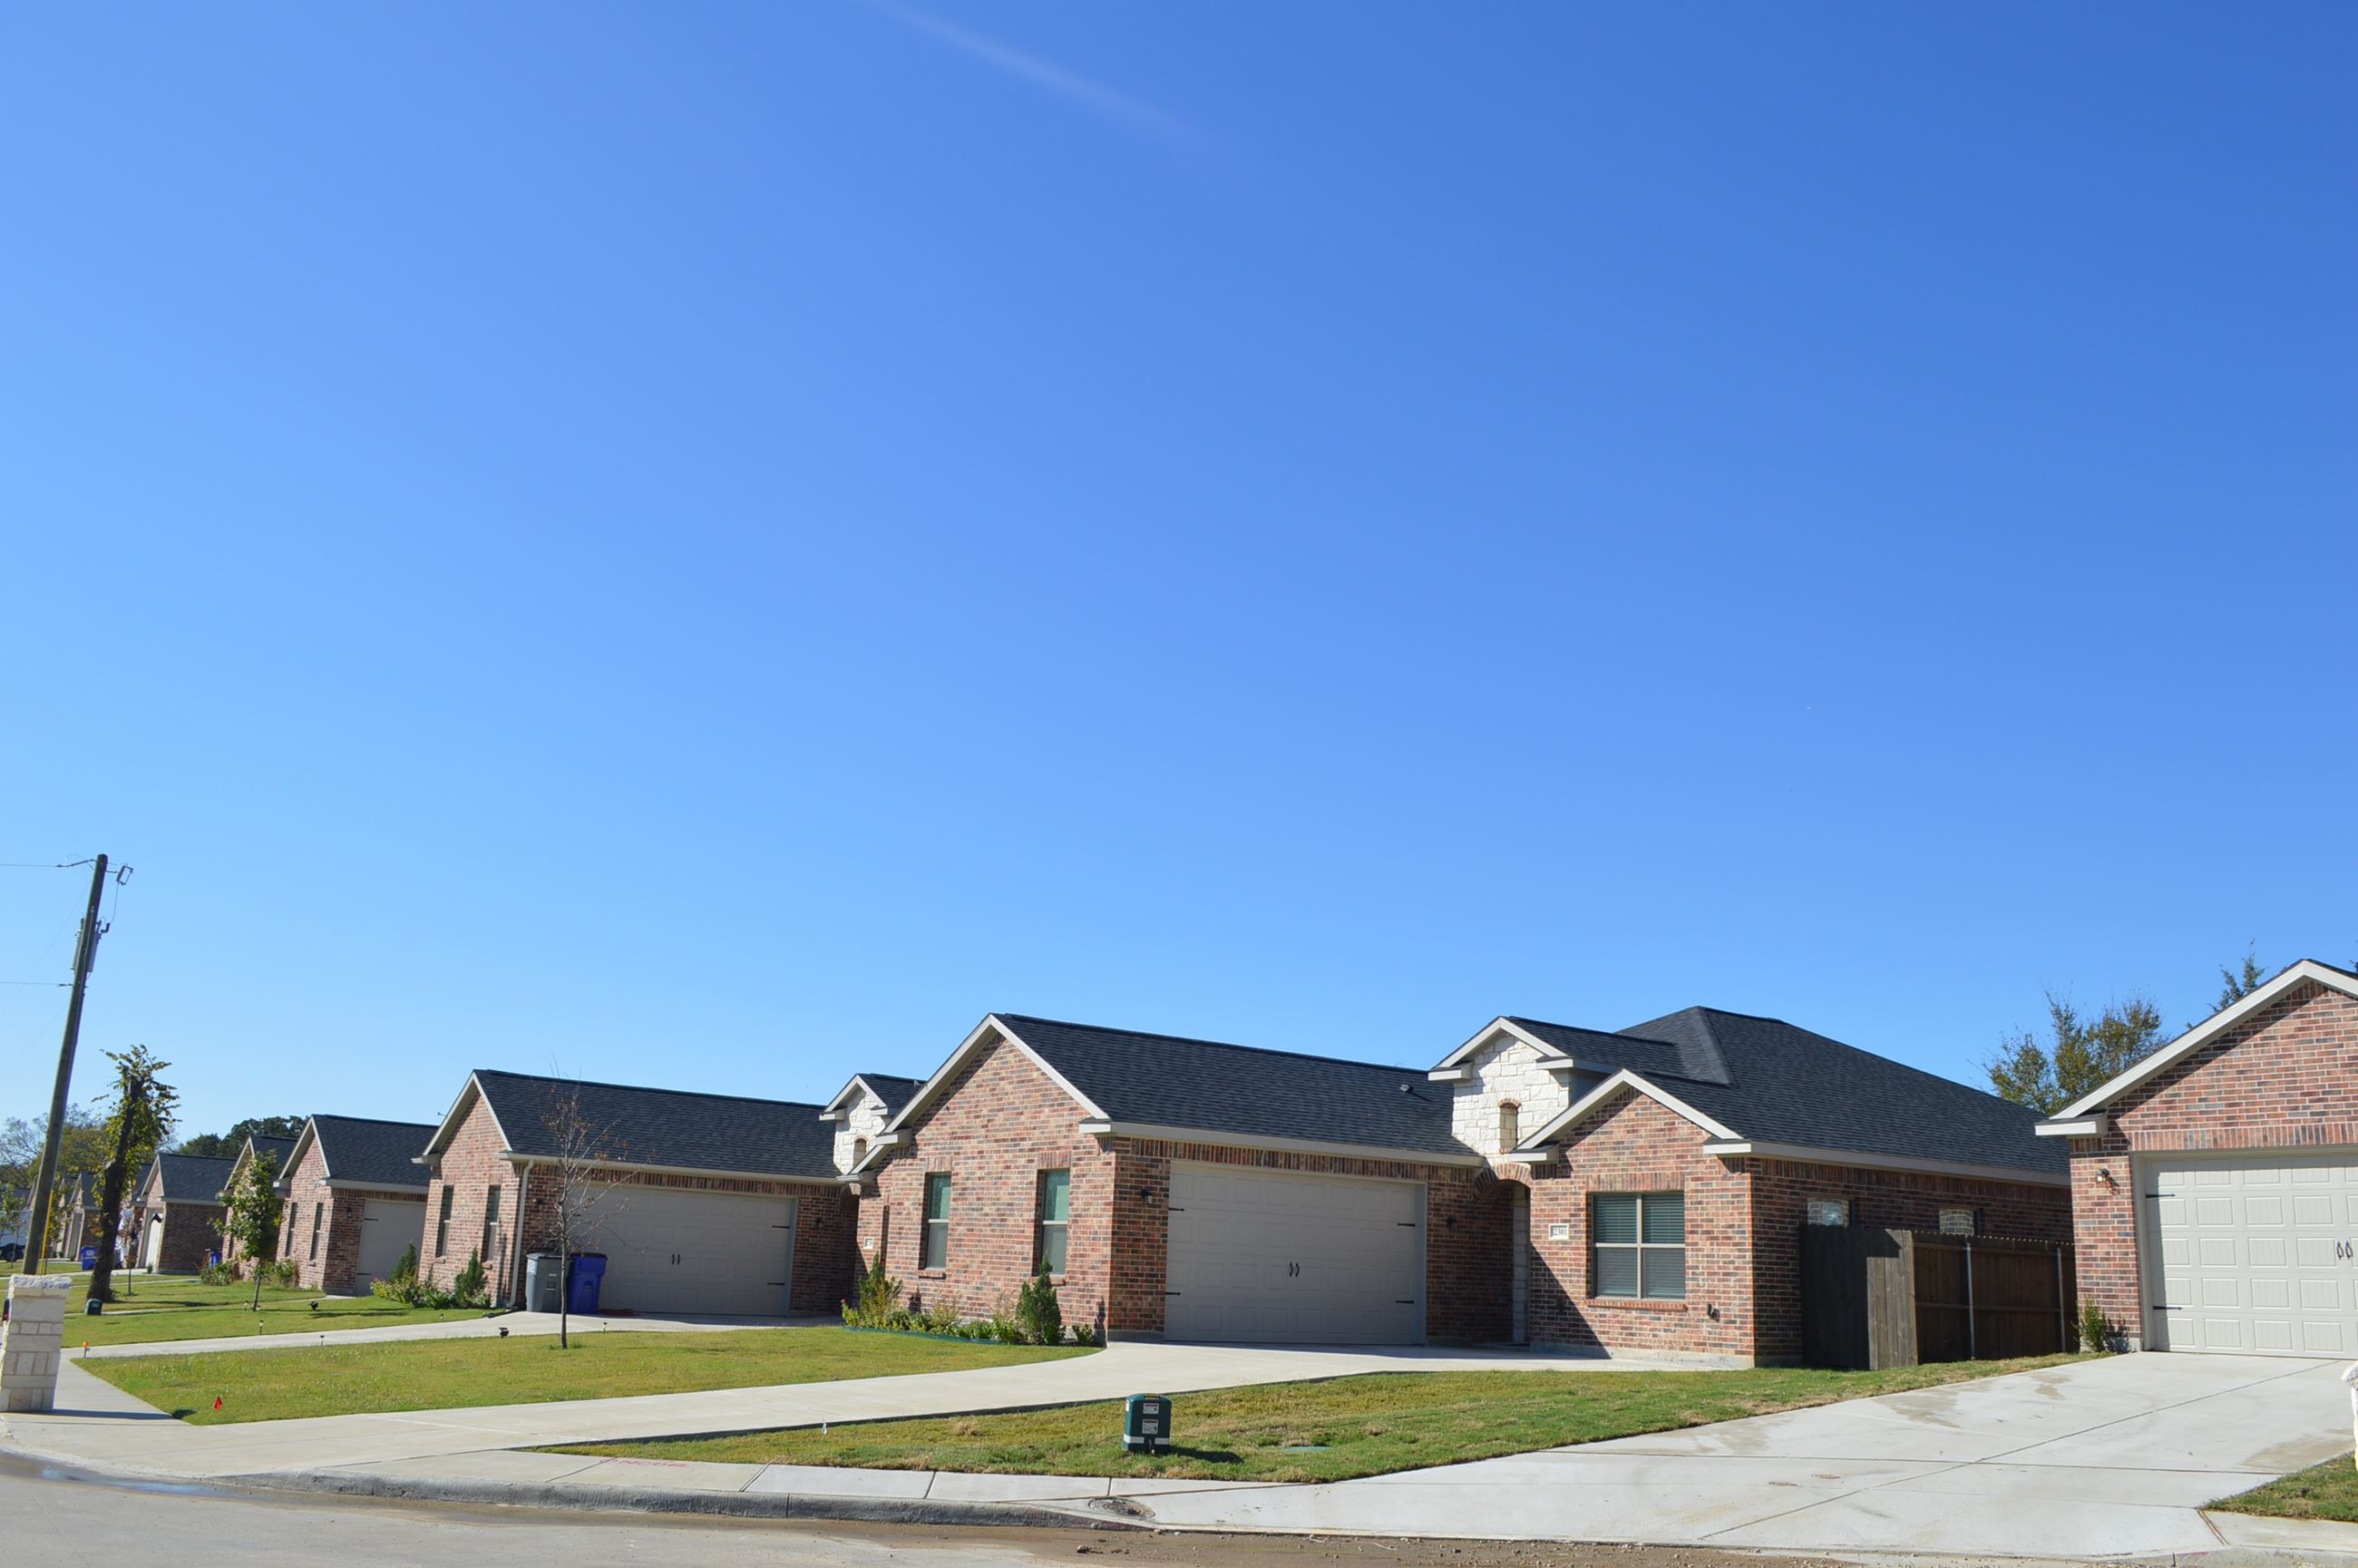 Doty Lane - New homes subdivision (3)